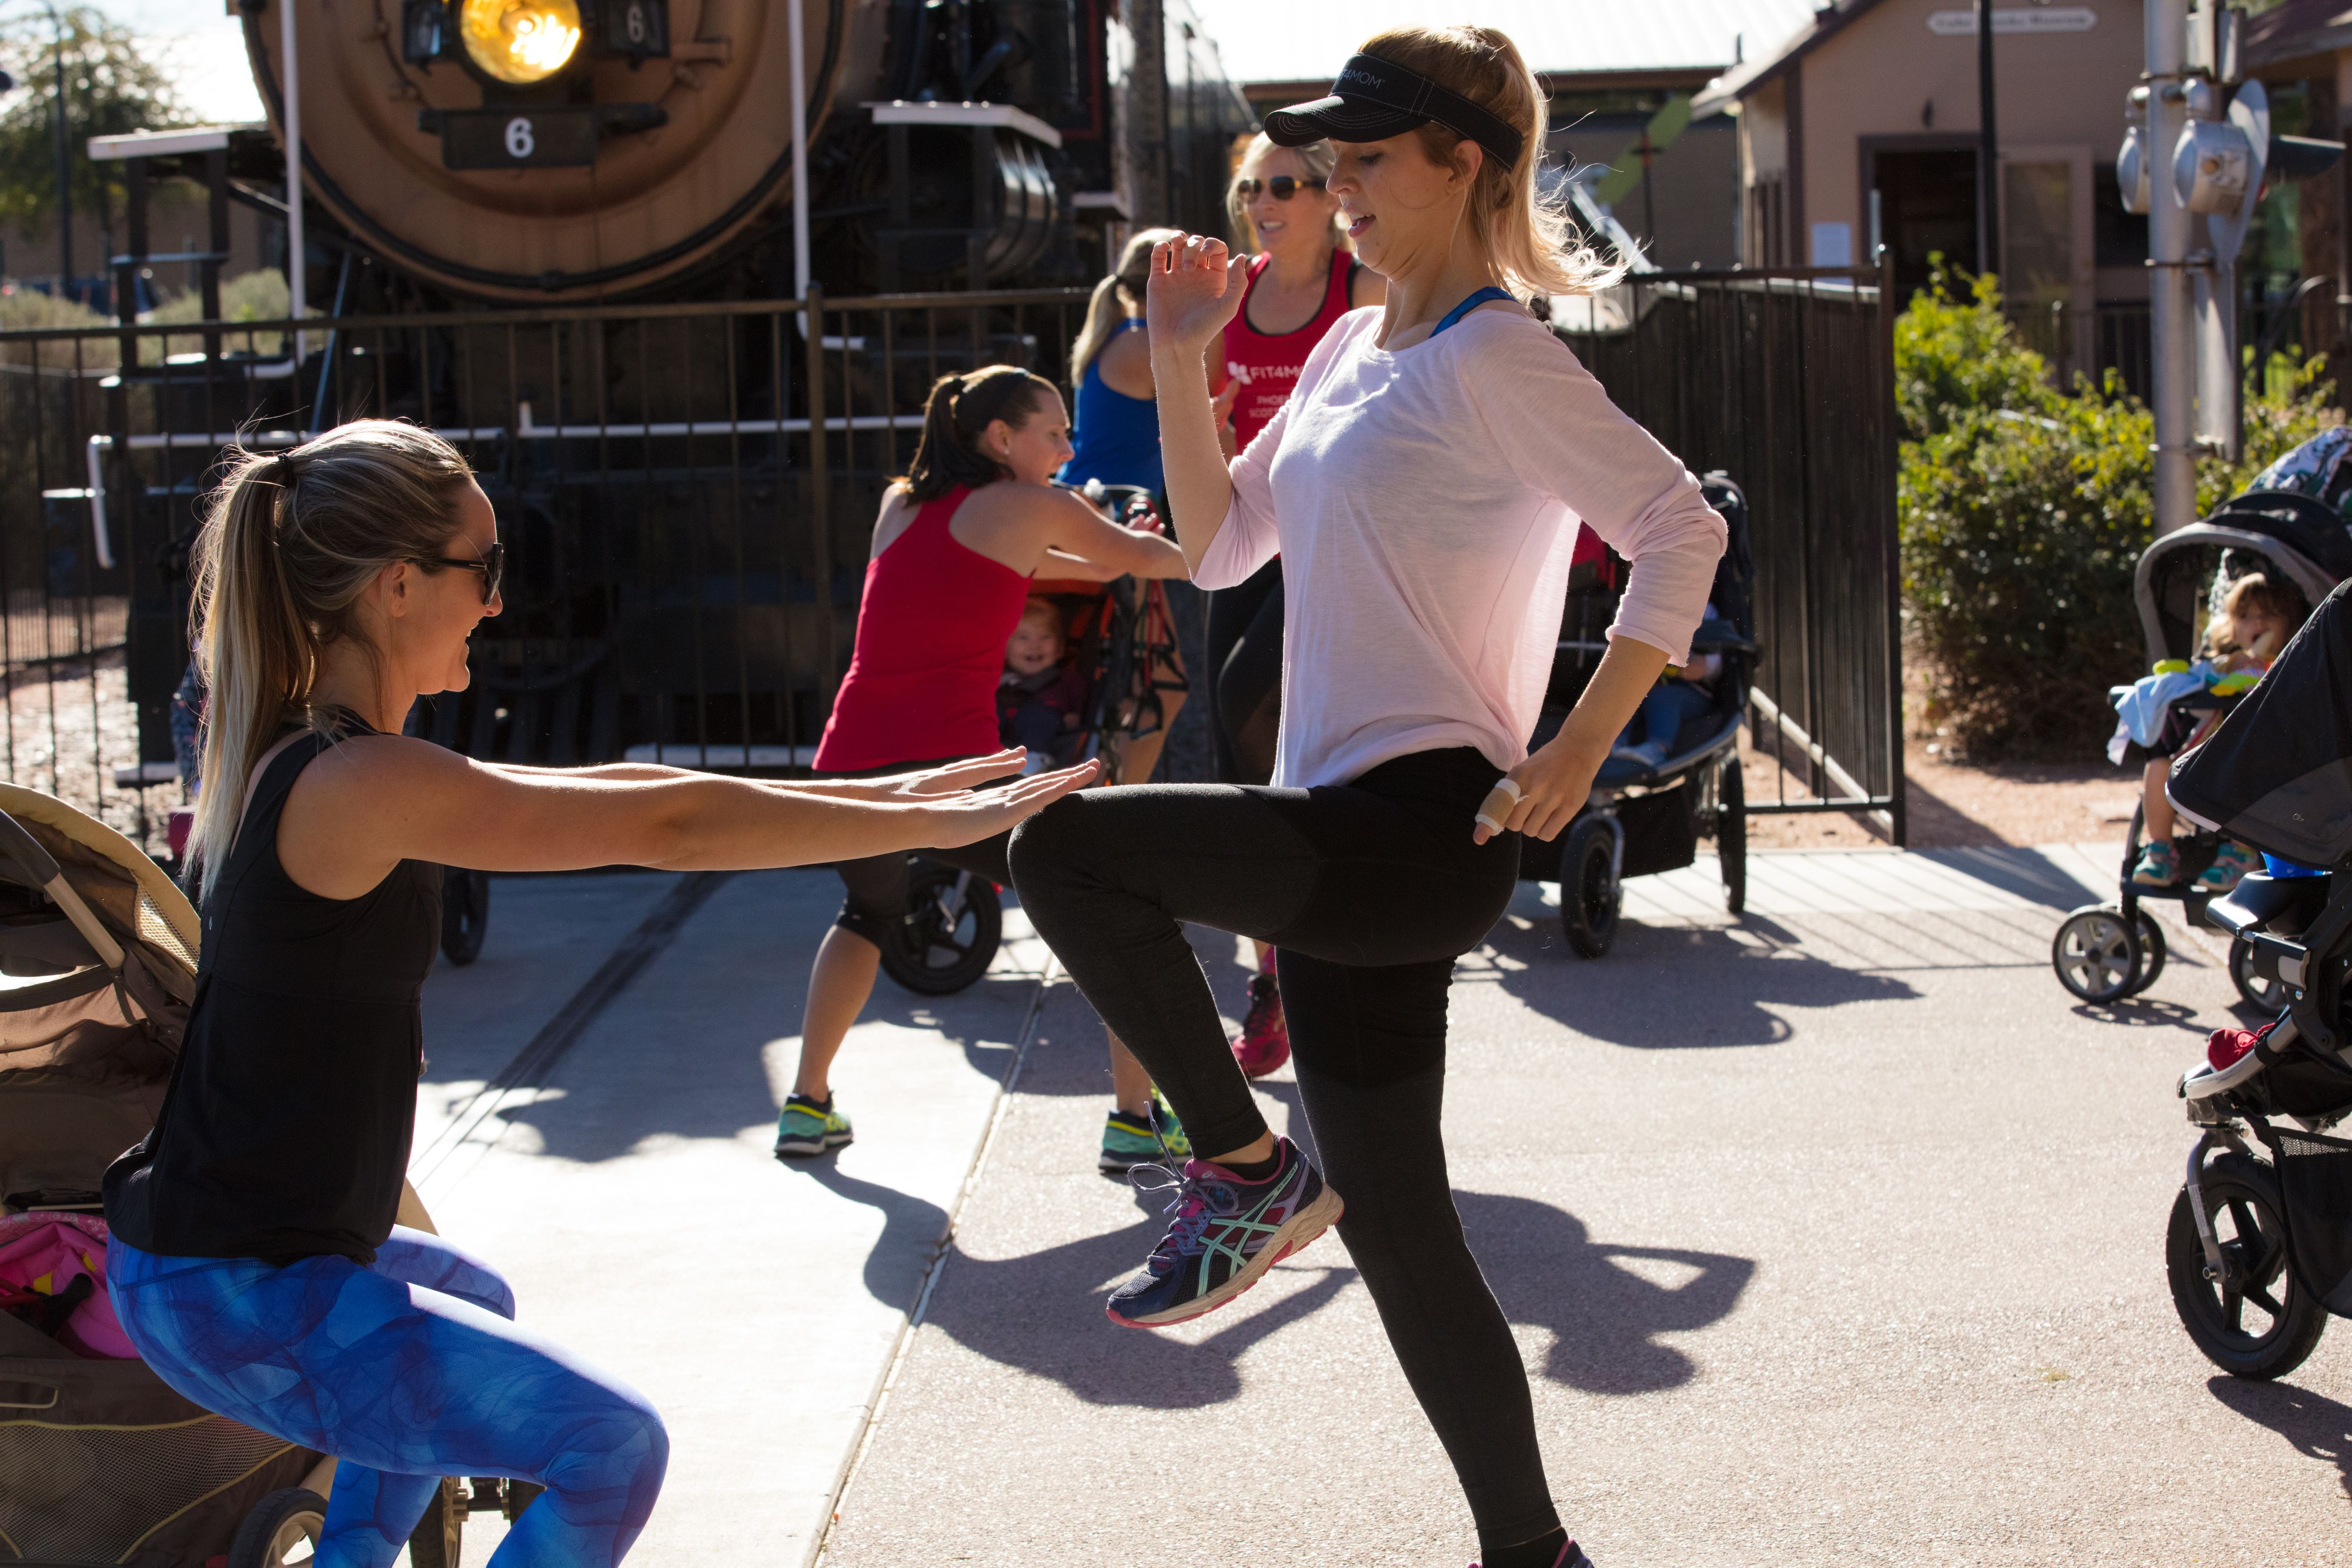 Fitness and community for moms!